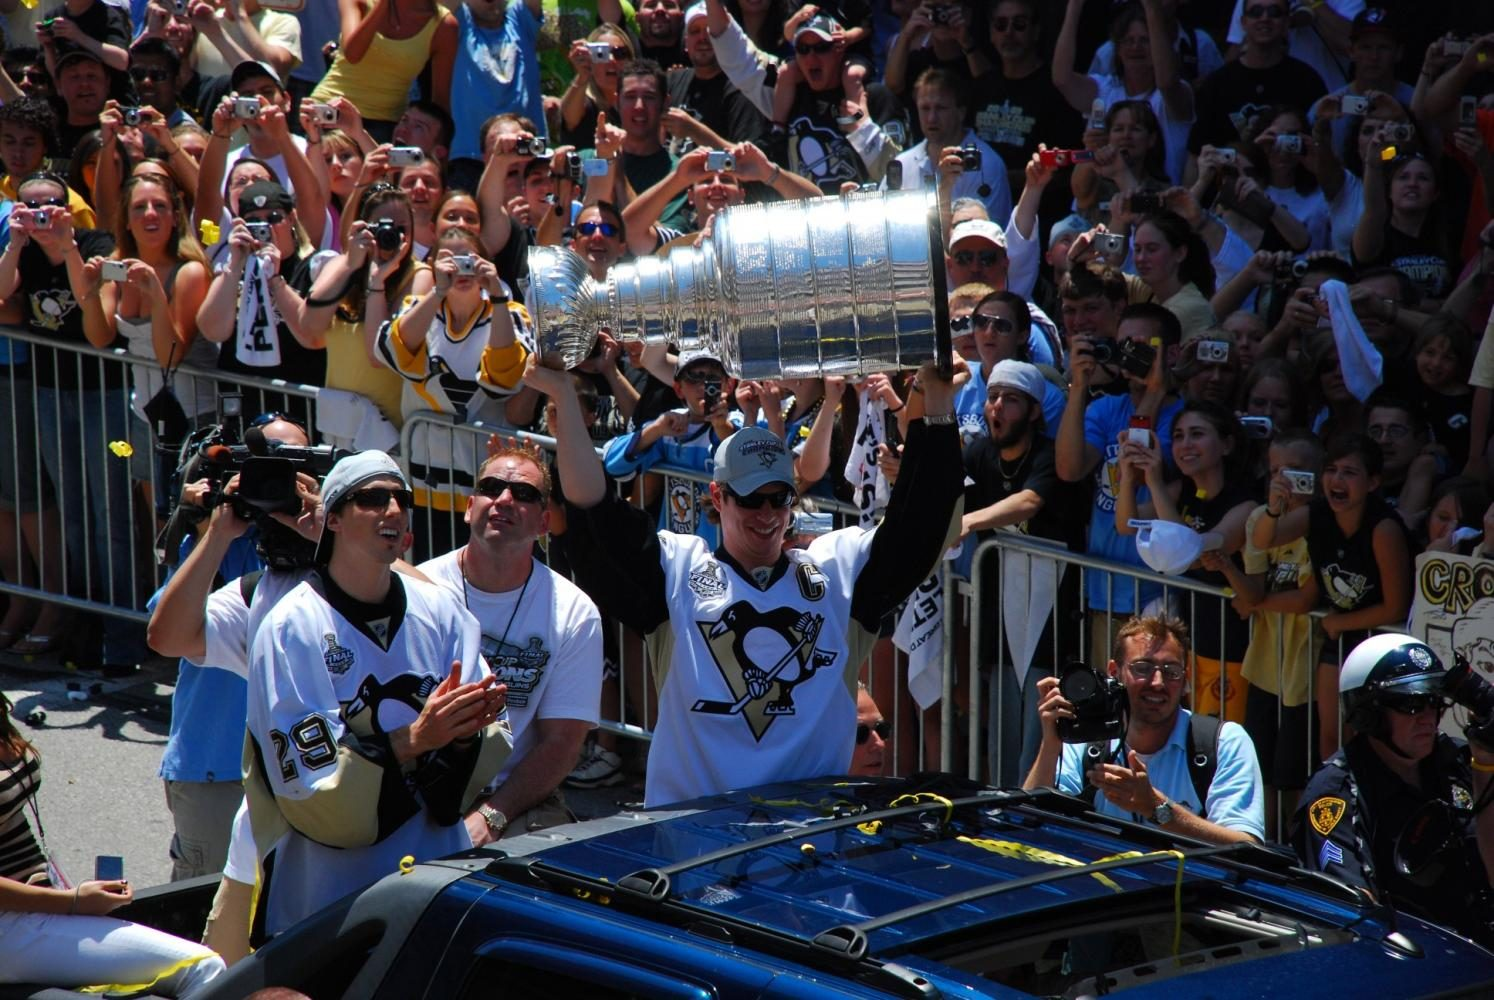 Celebrating+during+a+parade+during+their+last+Stanley+Cup+win%2C+Sidney+Crosby+holds+the+Stanley+Cup+above+his+head.+The+Penguins+have+won+the+cup+in+back-to-back+years%2C+and+this+is+Crosby%E2%80%99s+third+time+hoisting+it+in+celebration.++%0A